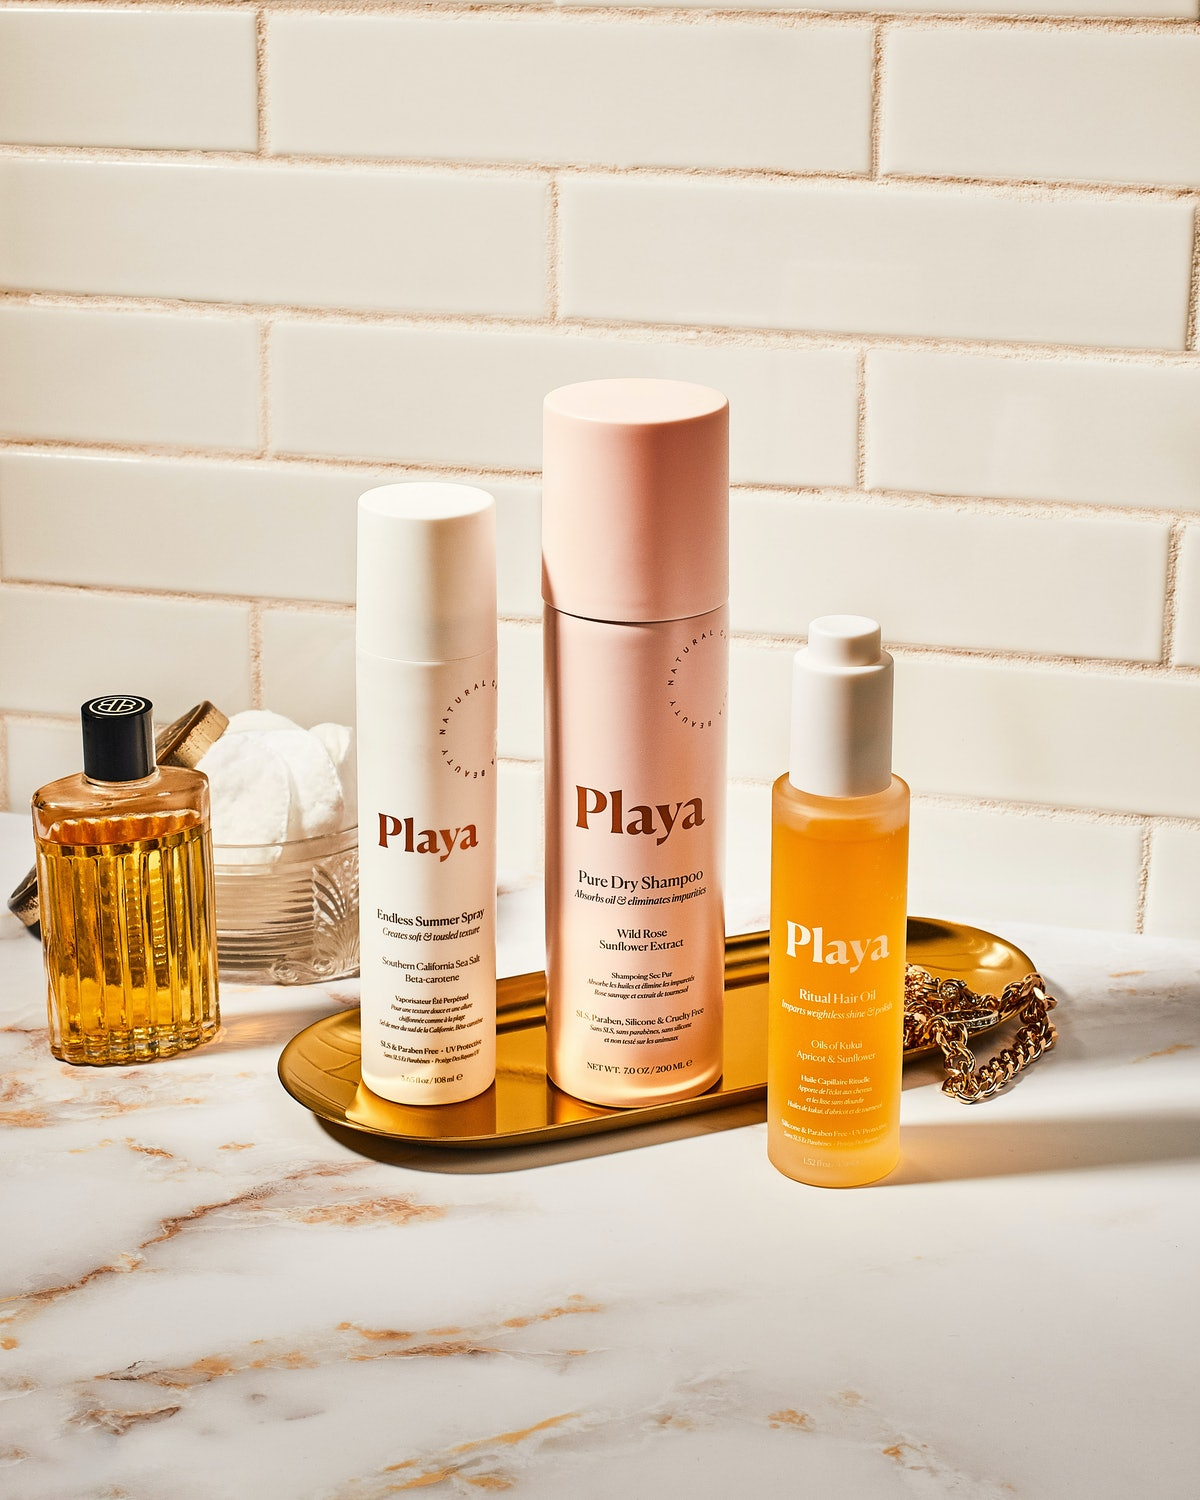 Playa will donate 200 bottles of its new Pure Dry Shampoo to healthcare workers and donate all of Ju...